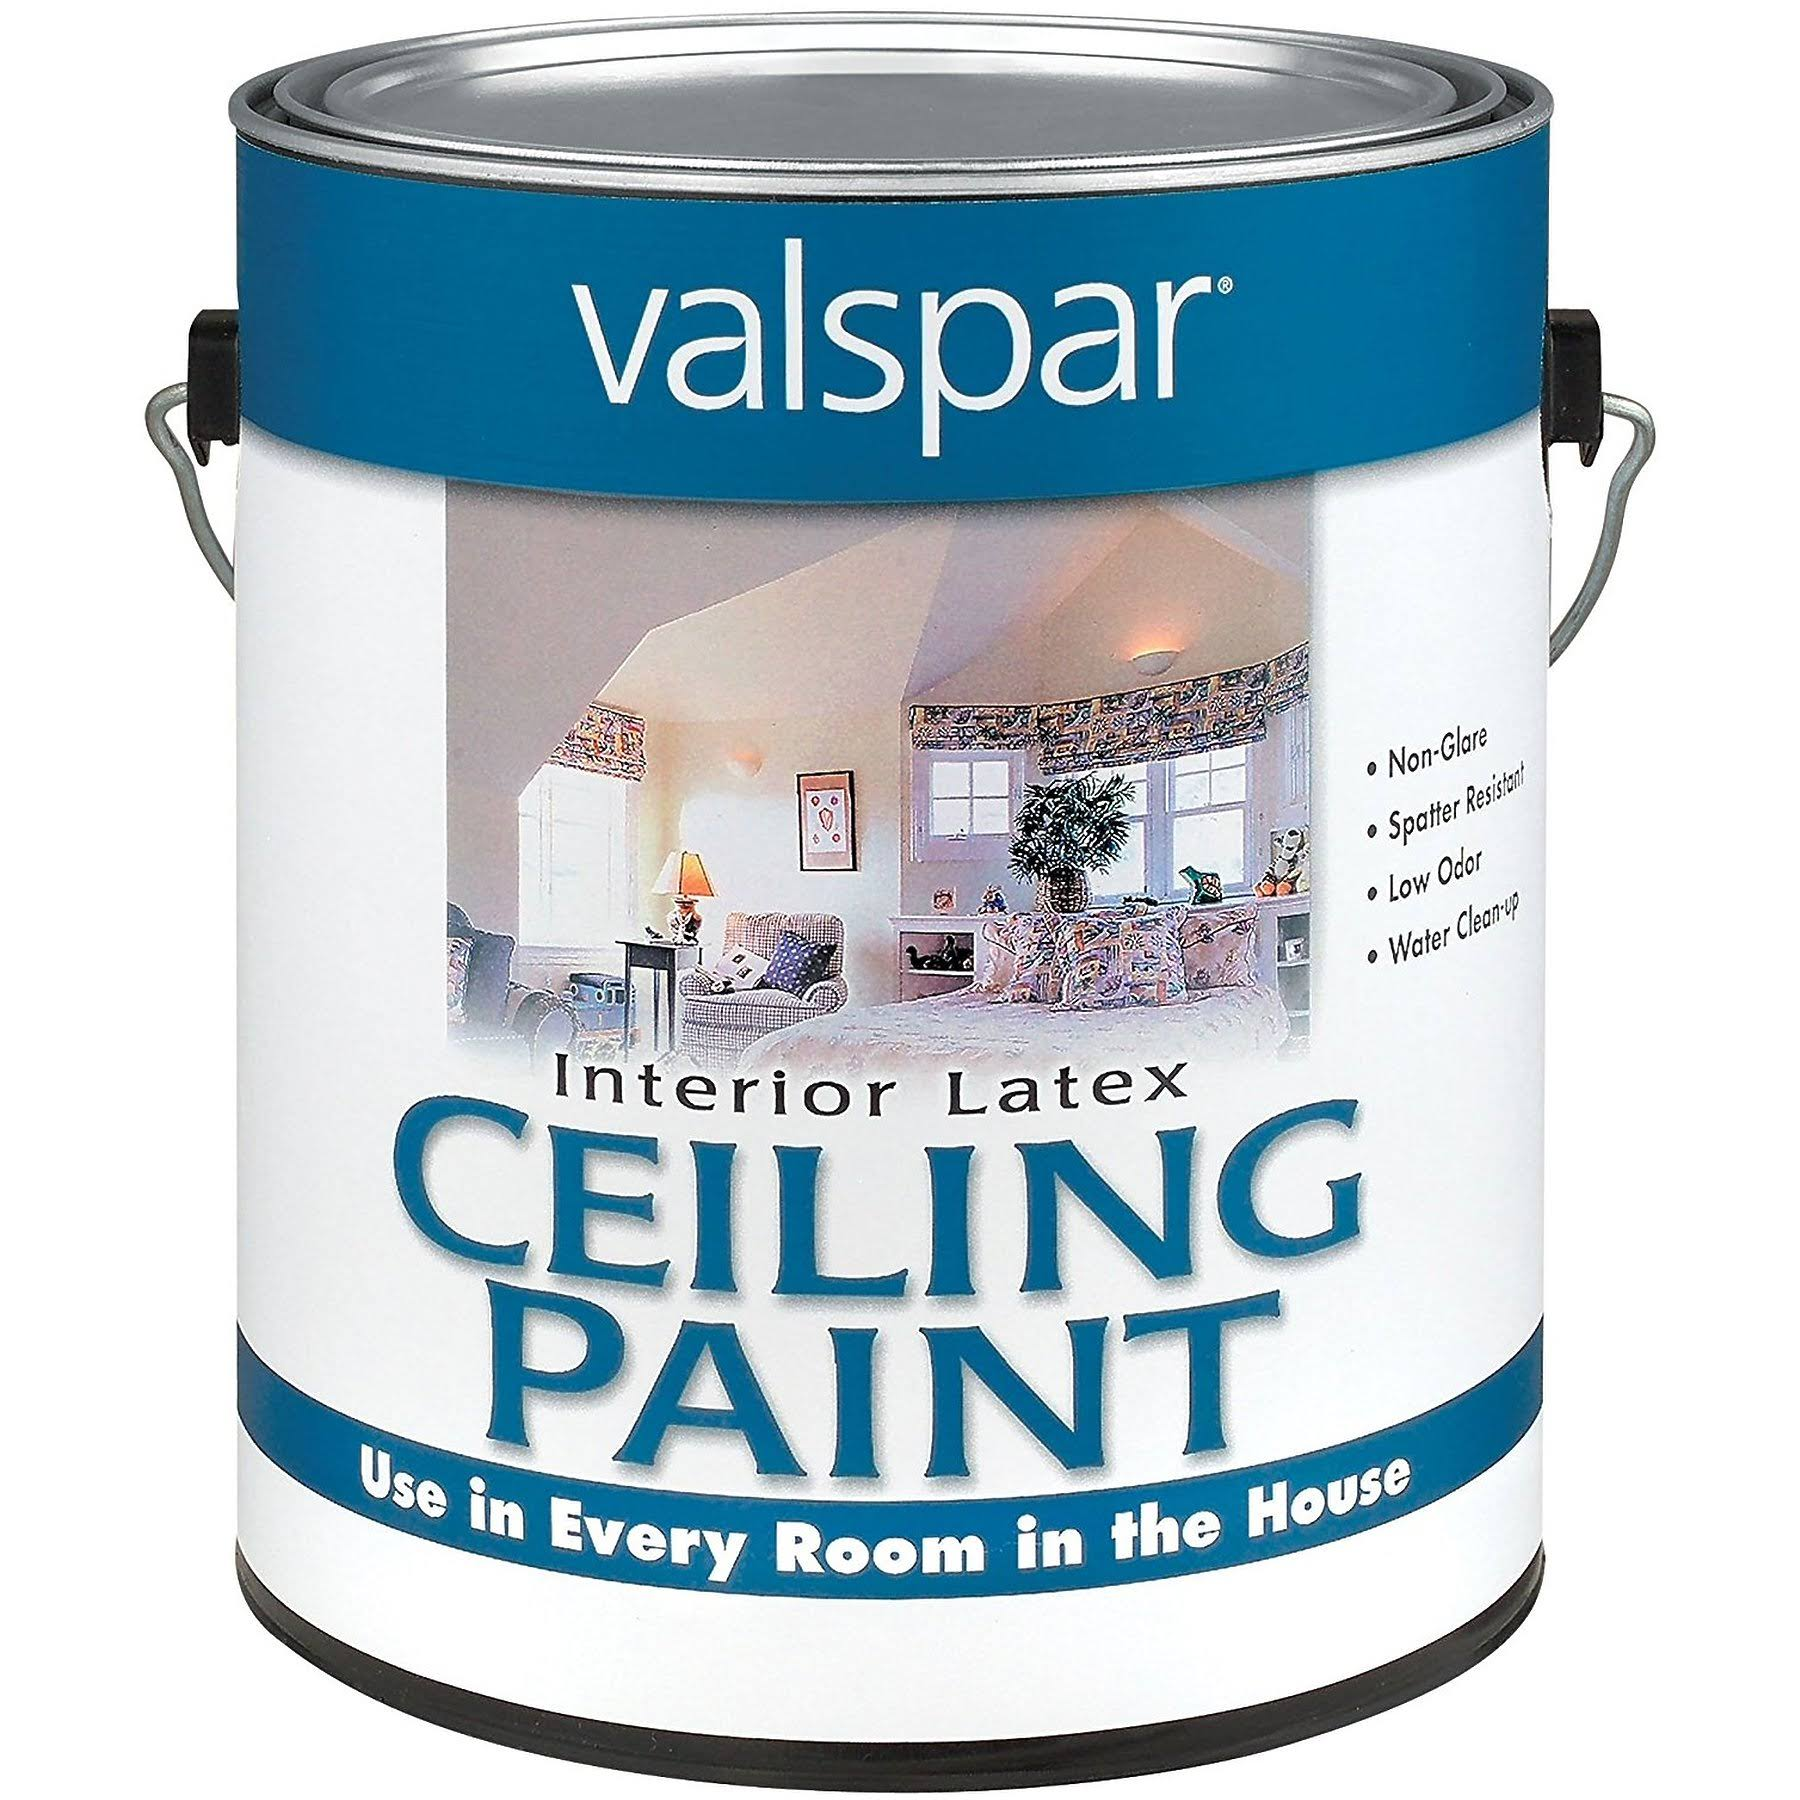 Valspar Interior Latex Ceiling White - Paint, 1 Gallon